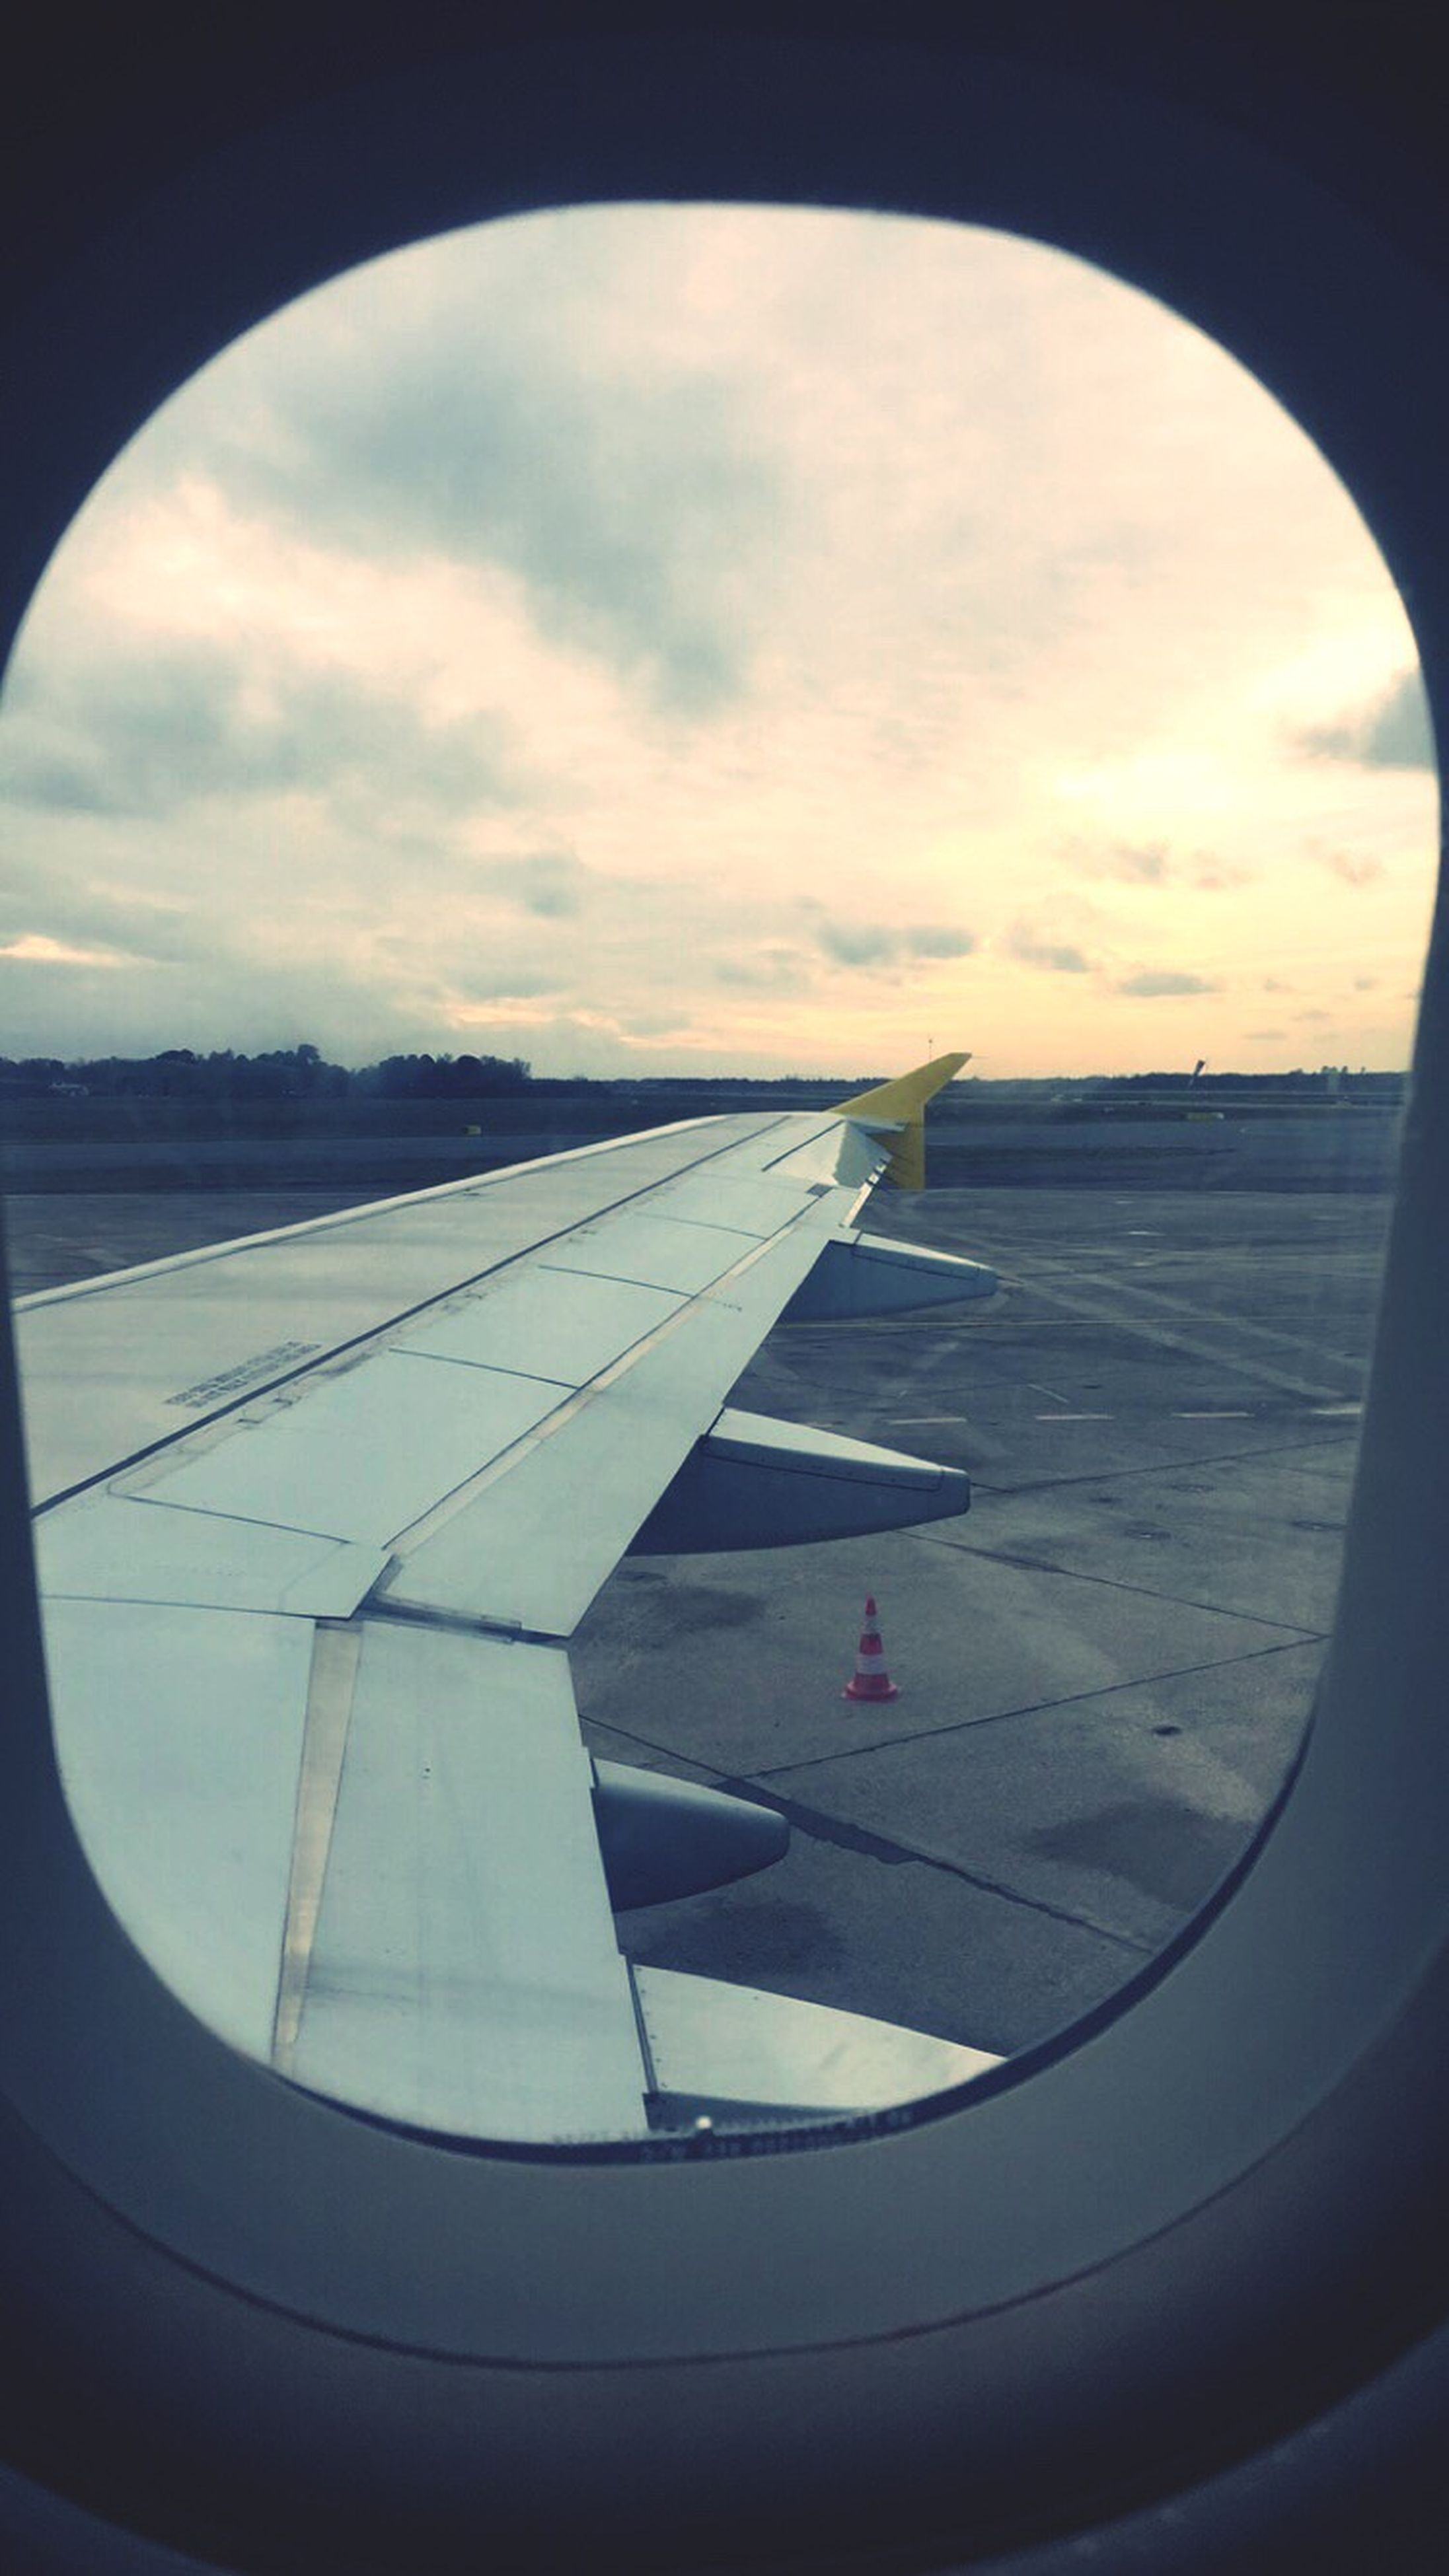 transportation, airplane, sky, air vehicle, cloud - sky, mode of transport, flying, part of, aircraft wing, cropped, cloud, window, vehicle interior, cloudy, glass - material, transparent, mid-air, travel, nature, landscape